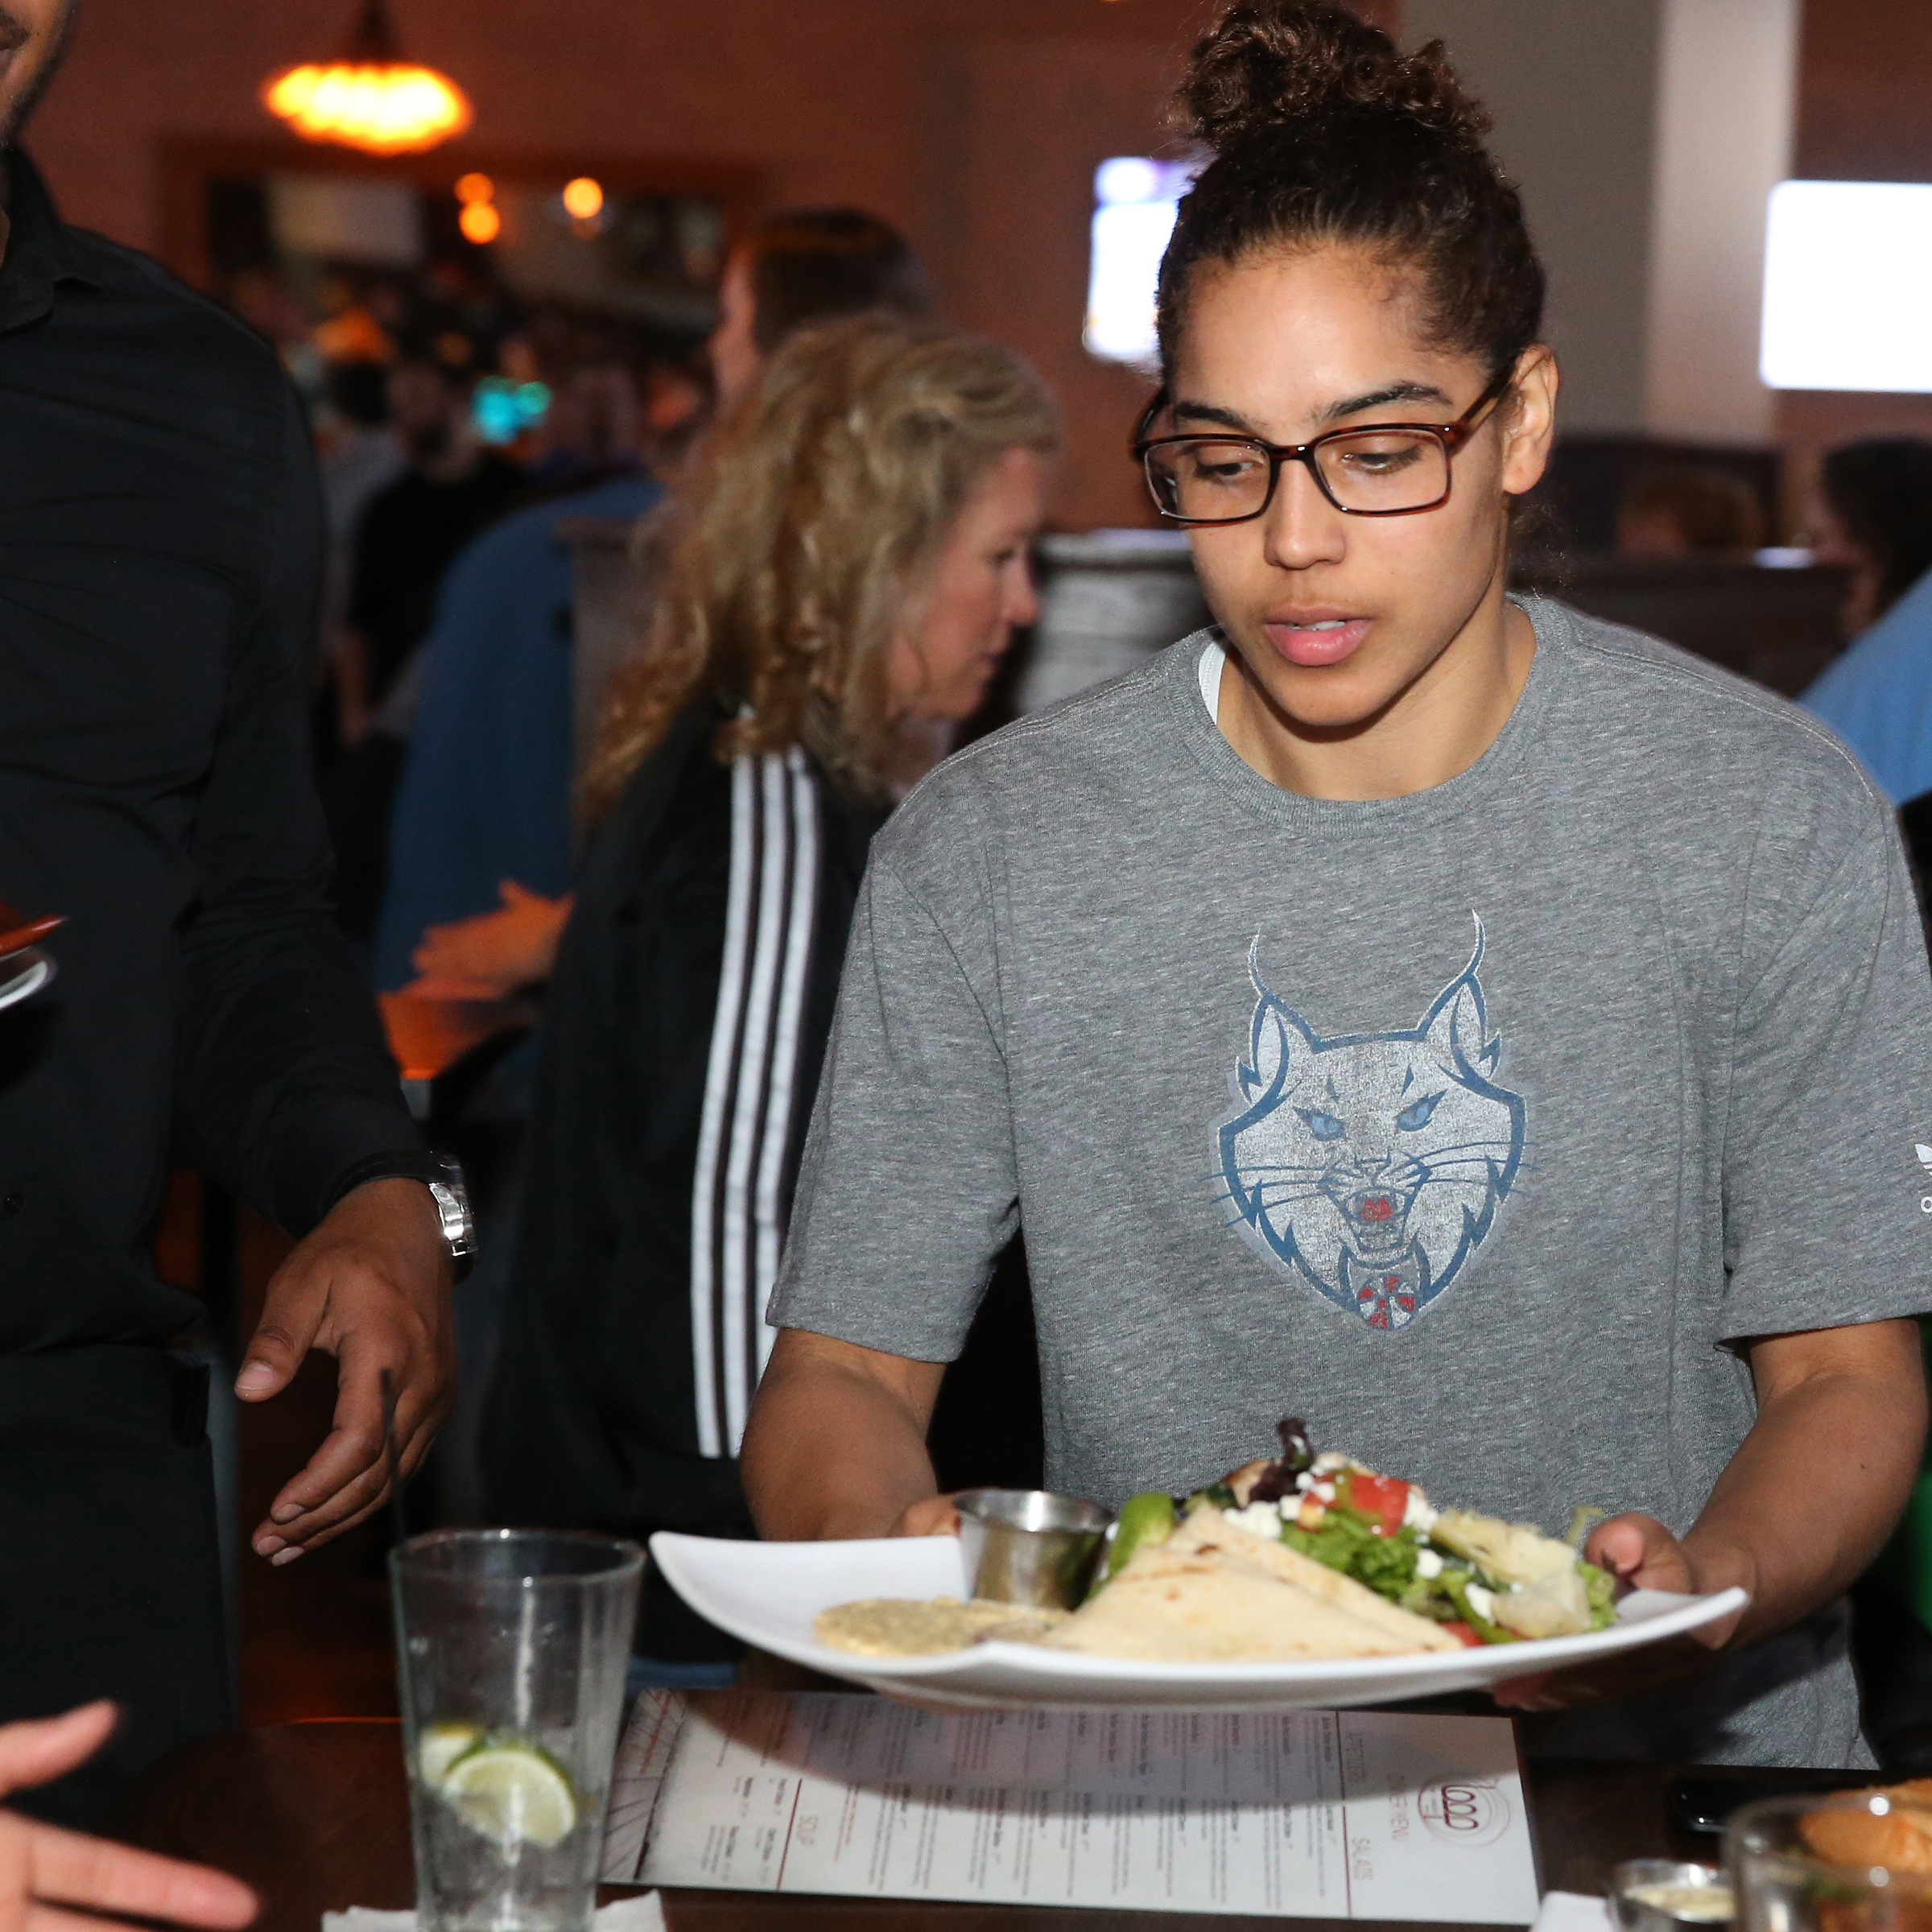 MINNEAPOLIS, MN - JUNE 3:  Jennifer O'Neill #0 of the Minnesota Lynx serves food during the Tip-A-Lynx fundraiser to benefit the Minnesota Lynx Fastbreak Foundation on June 3, 2015 at the Loop West End Bar & Restaurant in Minneapolis, Minnesota.  NOTE TO USER: User expressly acknowledges and agrees that, by downloading and or using this Photograph, user is consenting to the terms and conditions of the Getty Images License Agreement. Mandatory Copyright Notice: Copyright 2015 NBAE (Photo by David Sherman/NBAE via Getty Images)